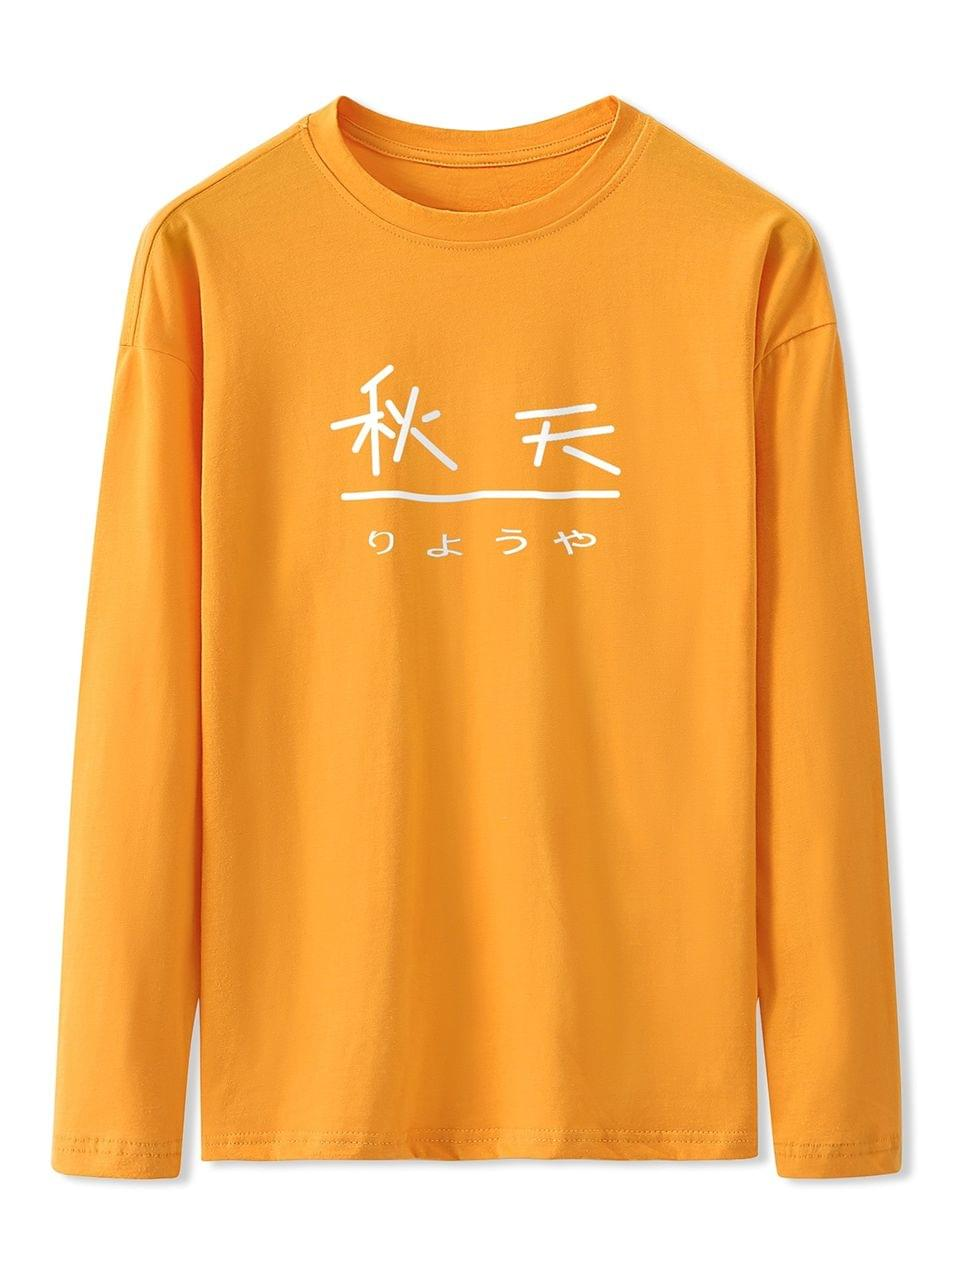 Men's Autumn Letter Graphic Print Long Sleeve T-shirt - Rubber Ducky Yellow L